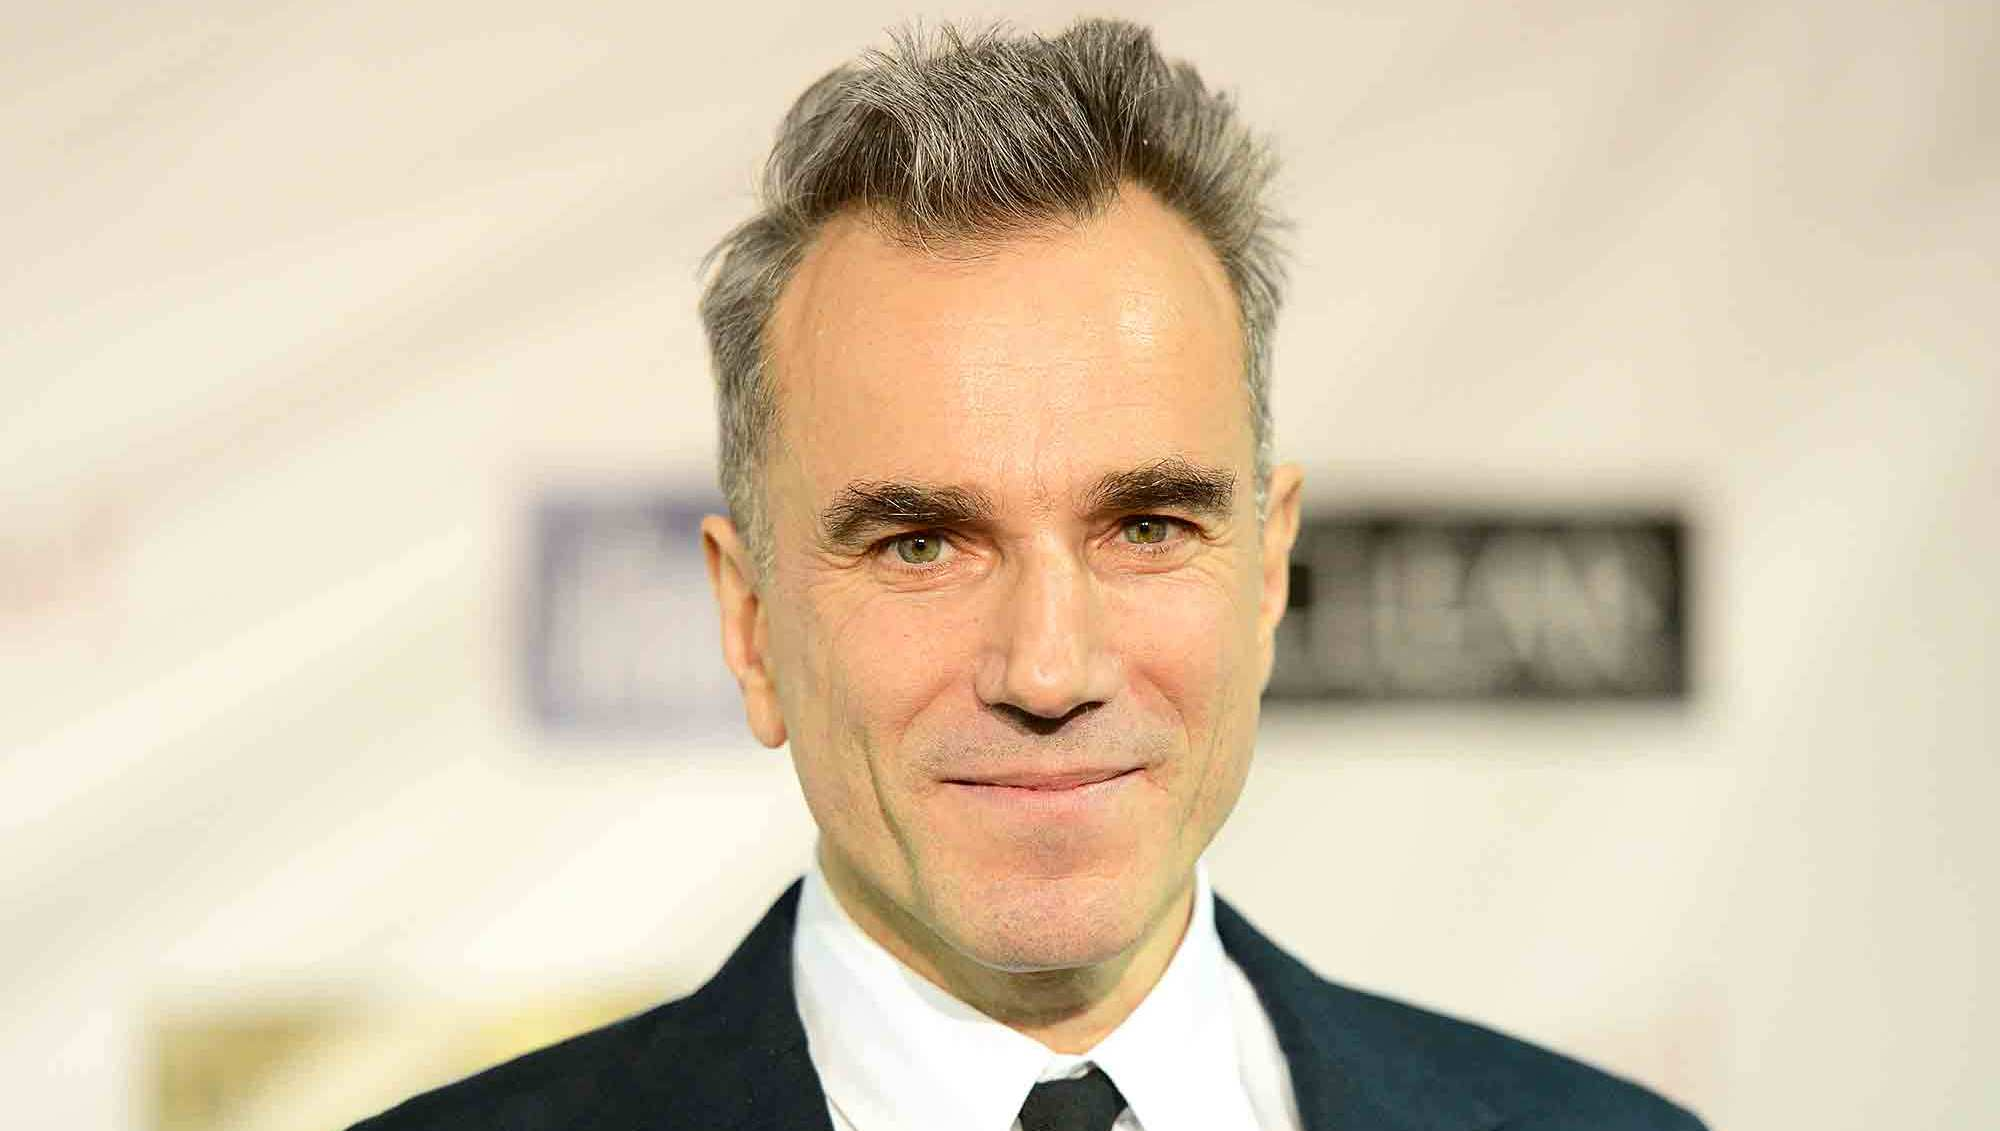 Daniel Day-Lewis attends the 18th Annual Critics' Choice Movie Awards in Santa Monica, California.